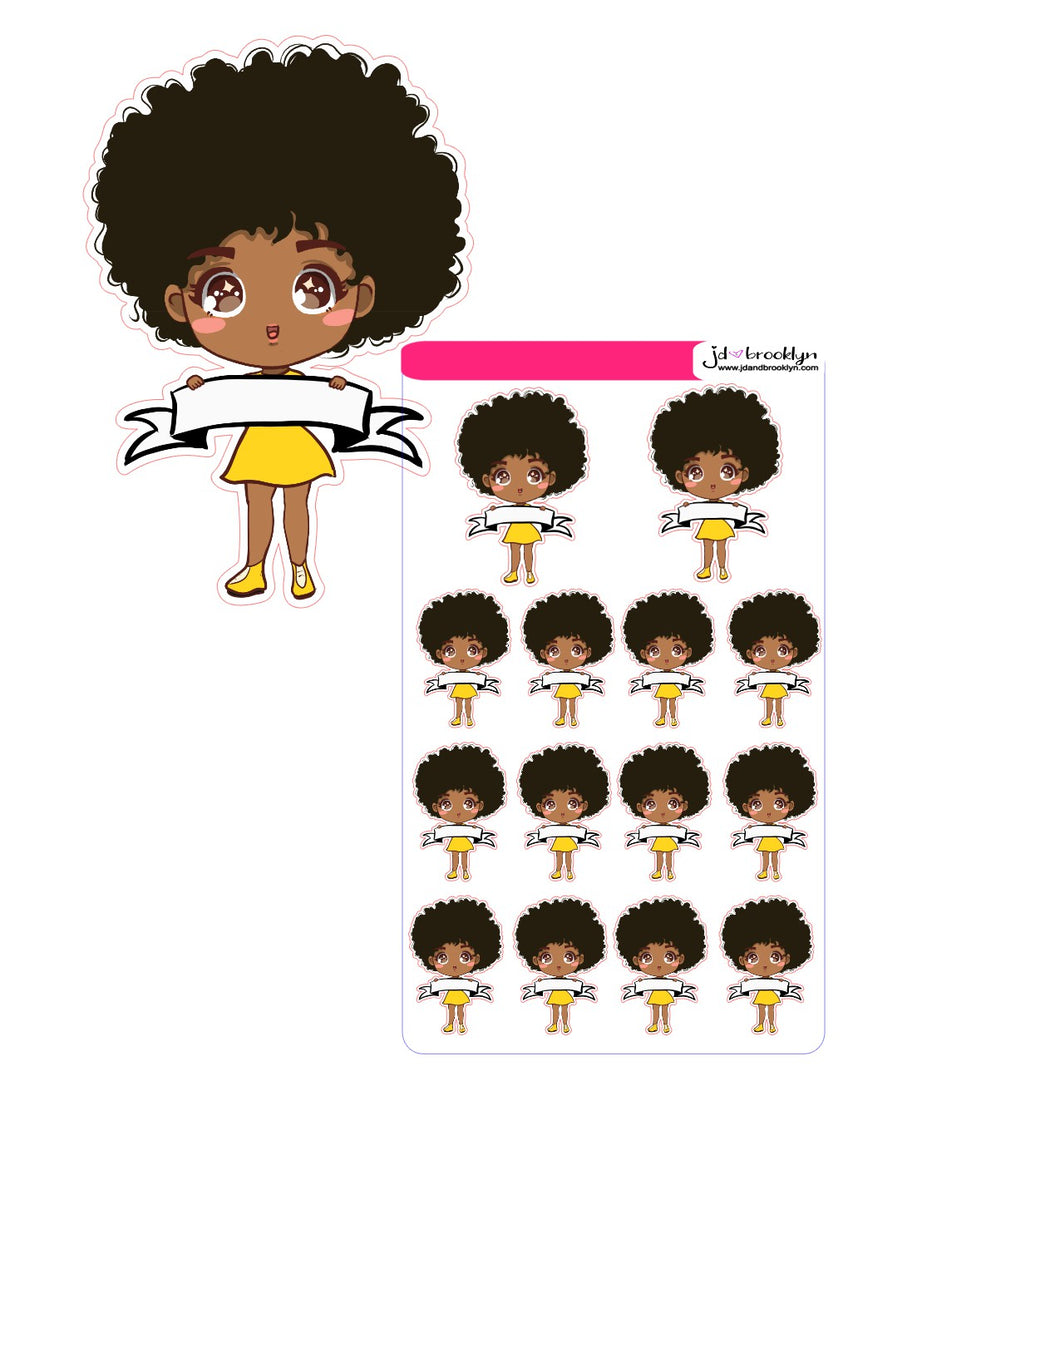 Doll holding blank sign chibi style (can be personalized)